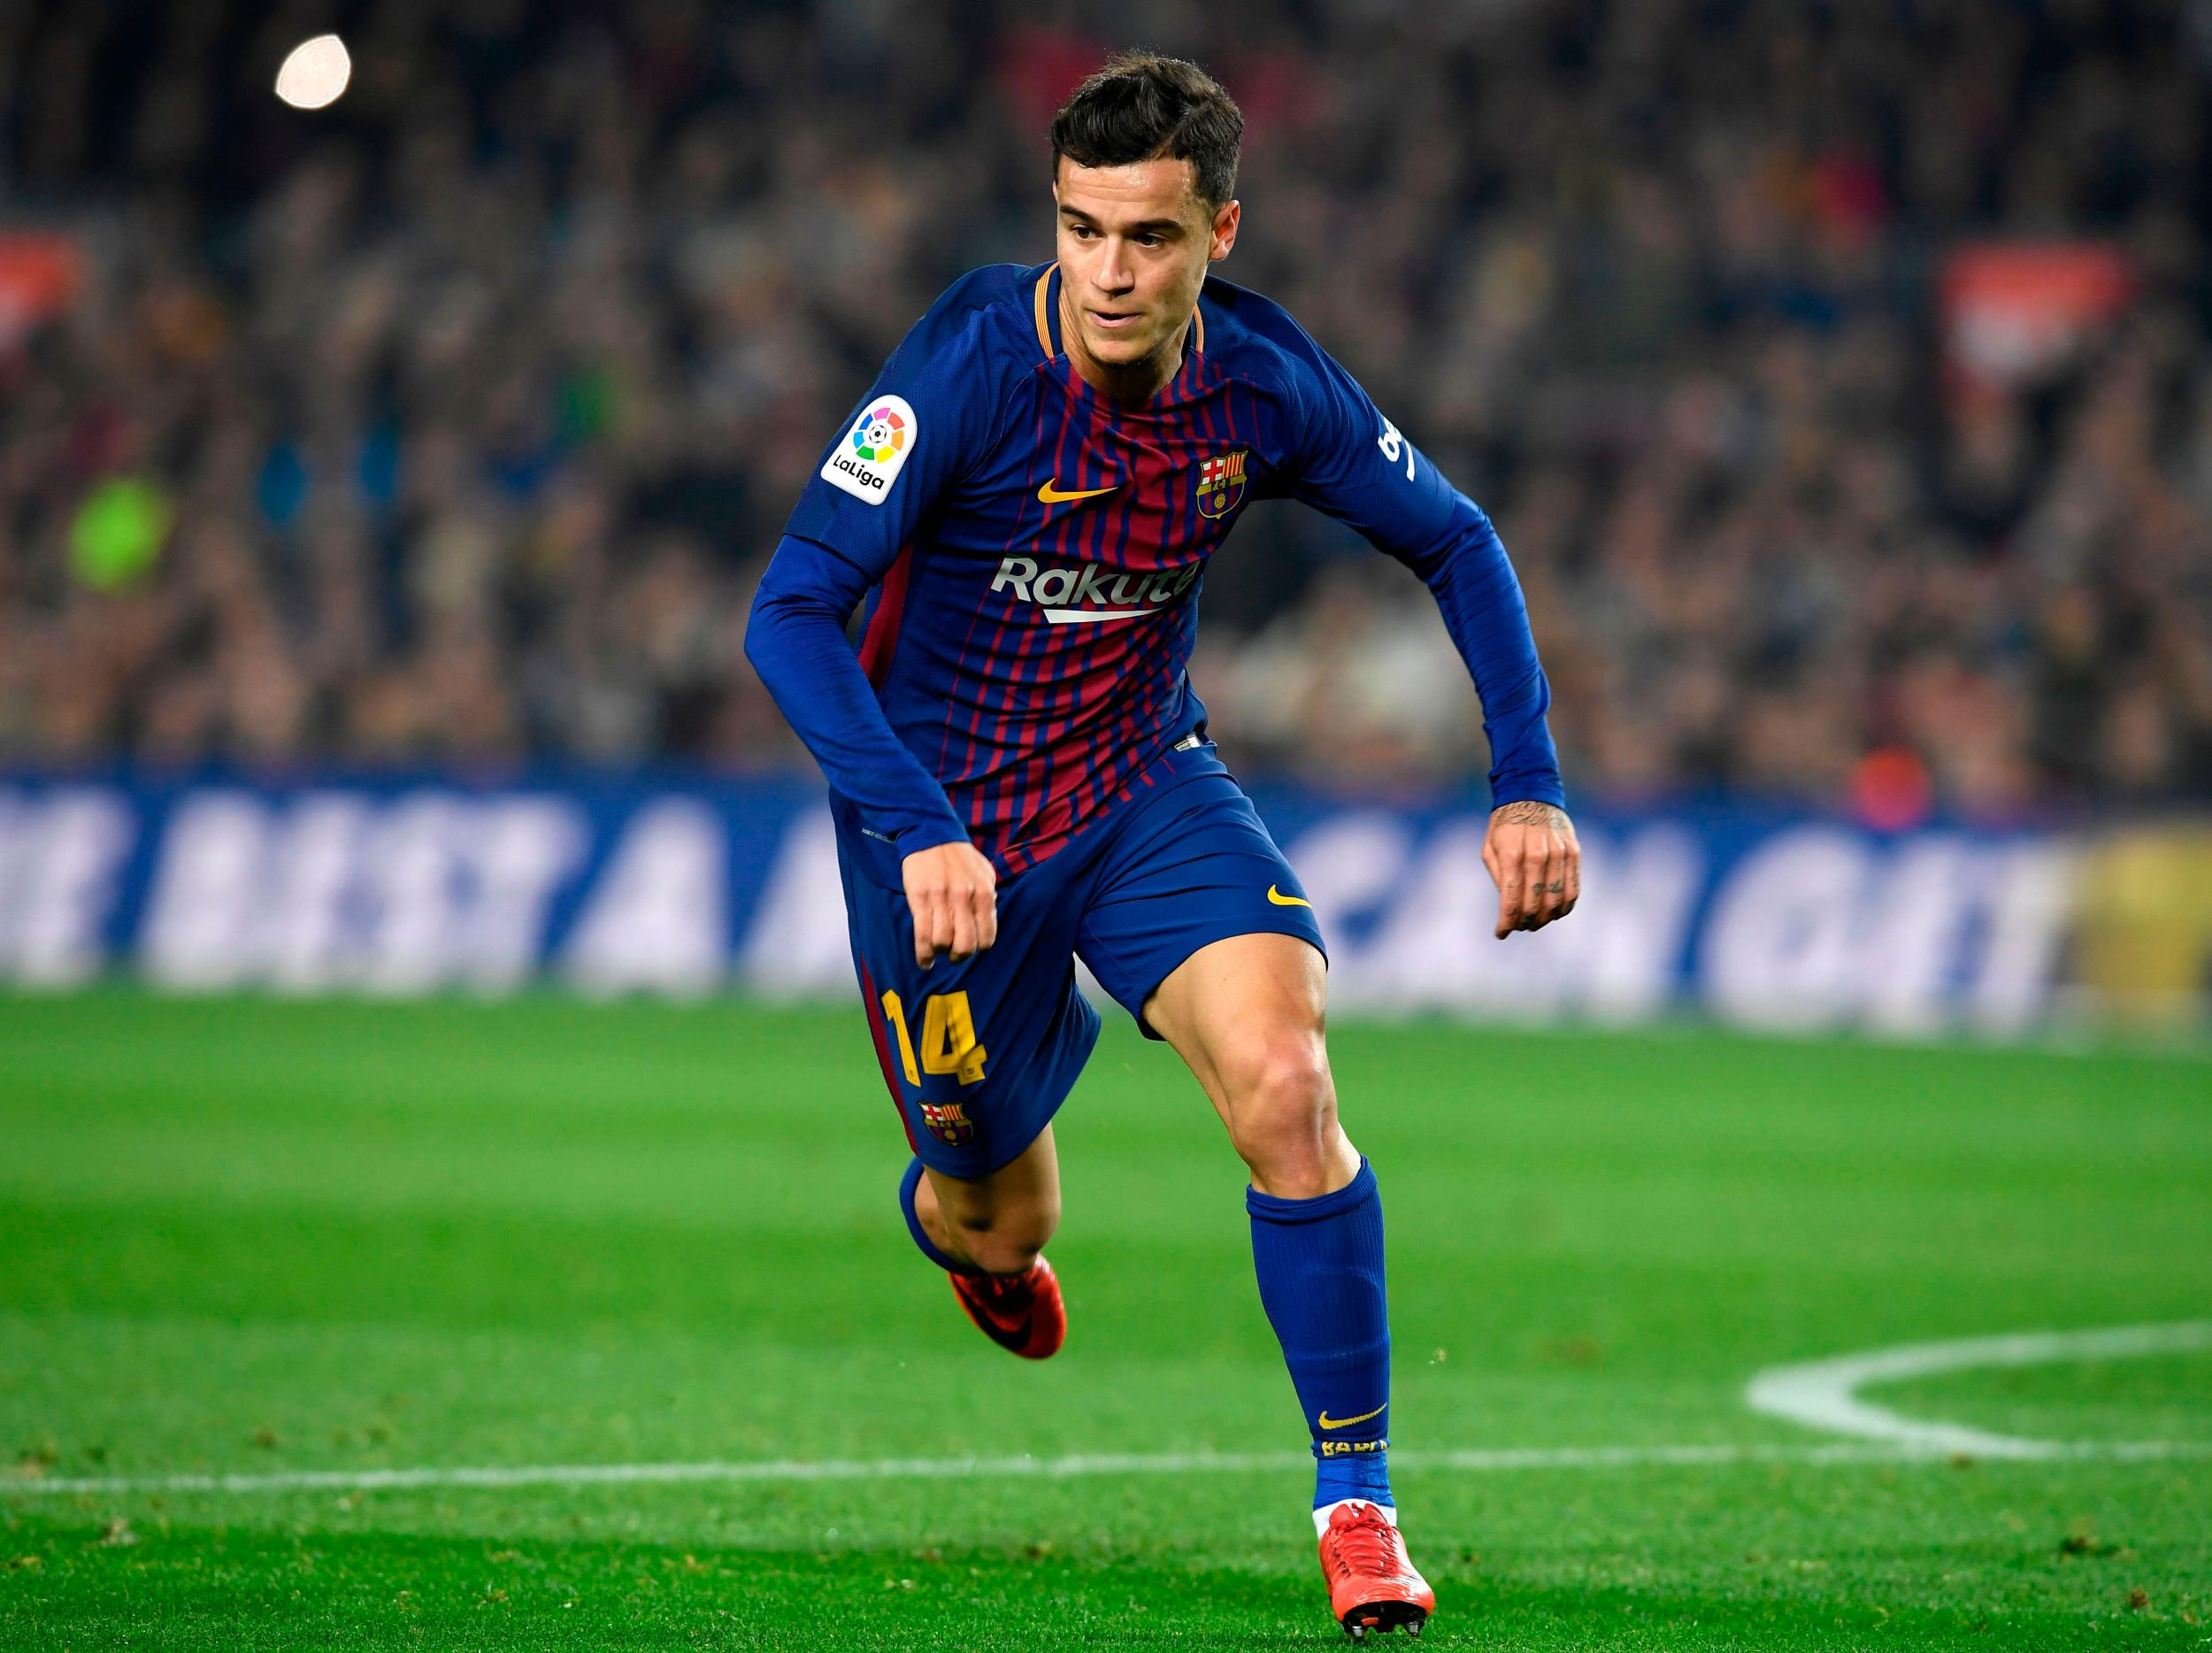 Philippe Coutinho left Liverpool for Barcelona to 'win big titles' and learn from Catalan greats